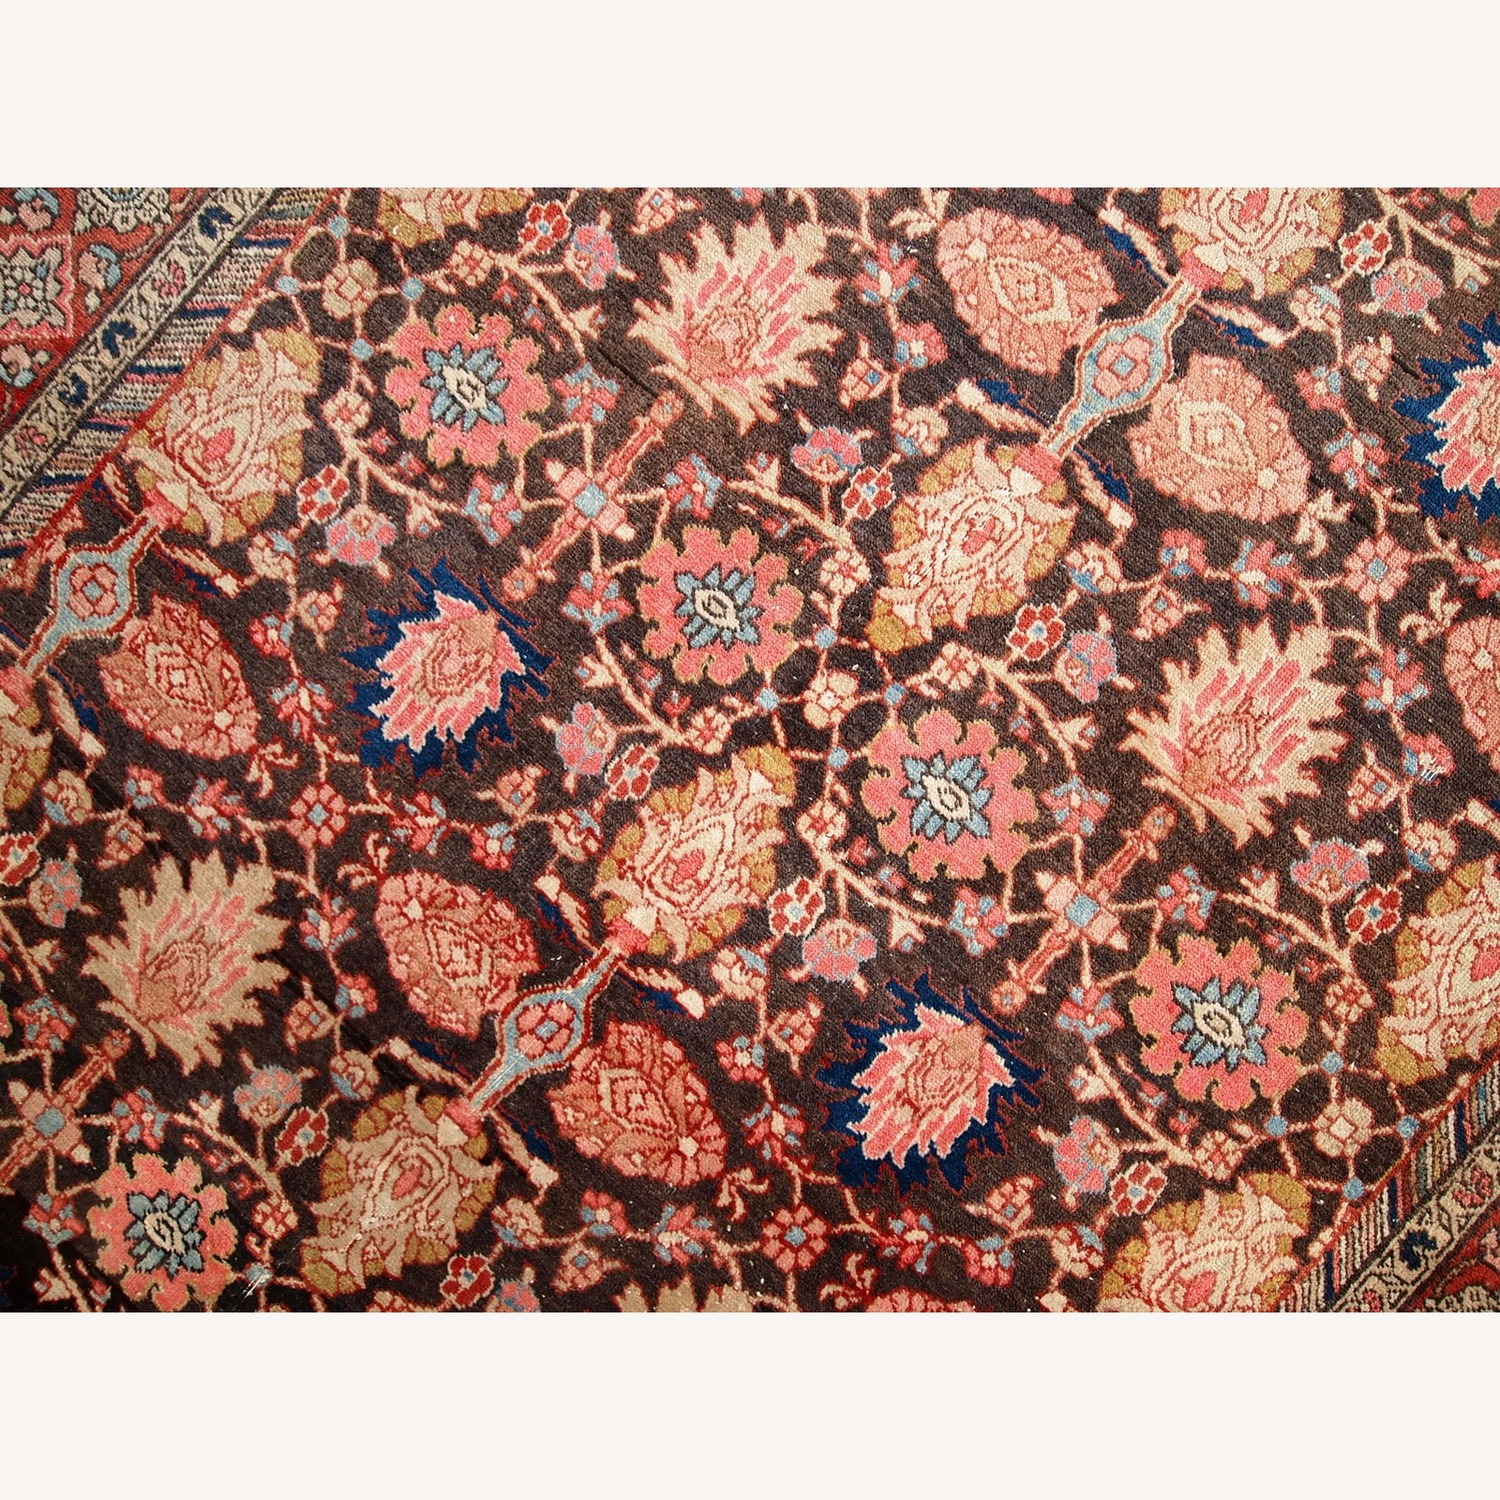 Handmade Antique Persian Bidjar Rug - image-10